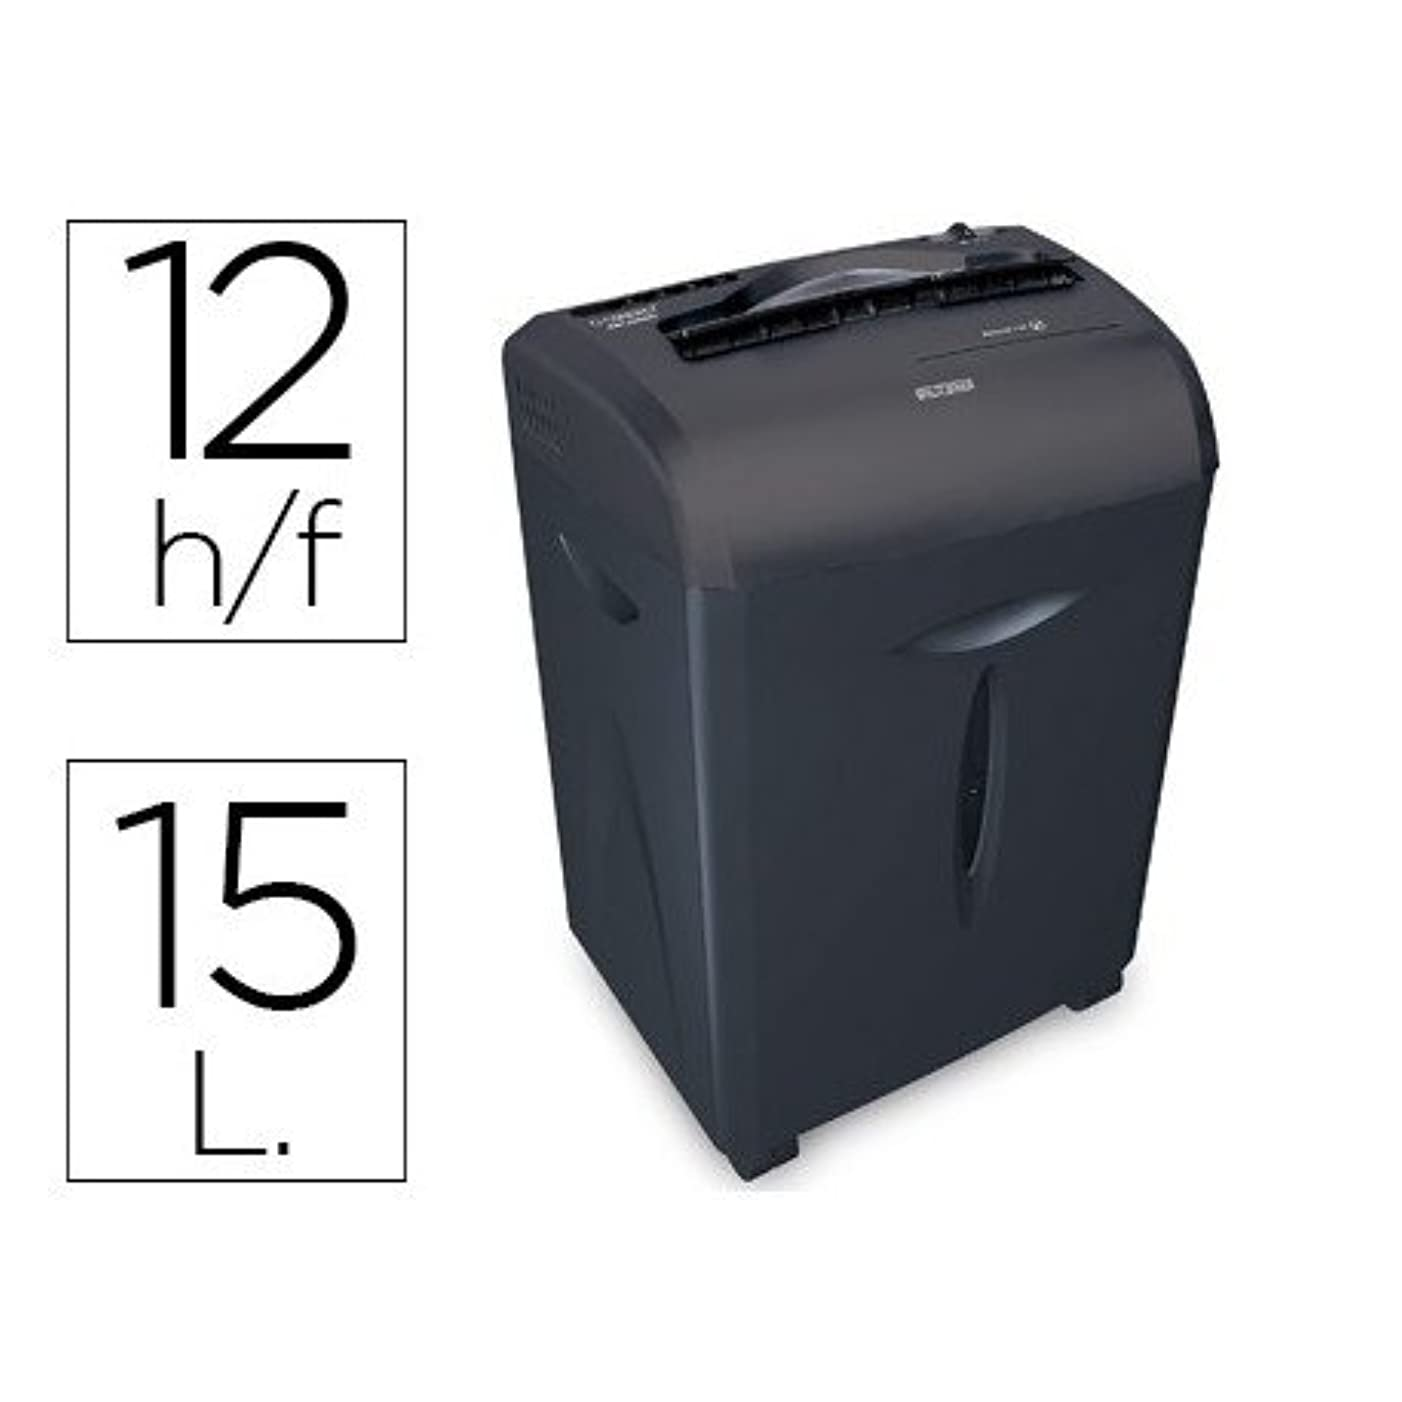 Q-Connect Document Shredder KF15551 Cutting Capacity 12 H Destroys Staples Clips CD and Cards